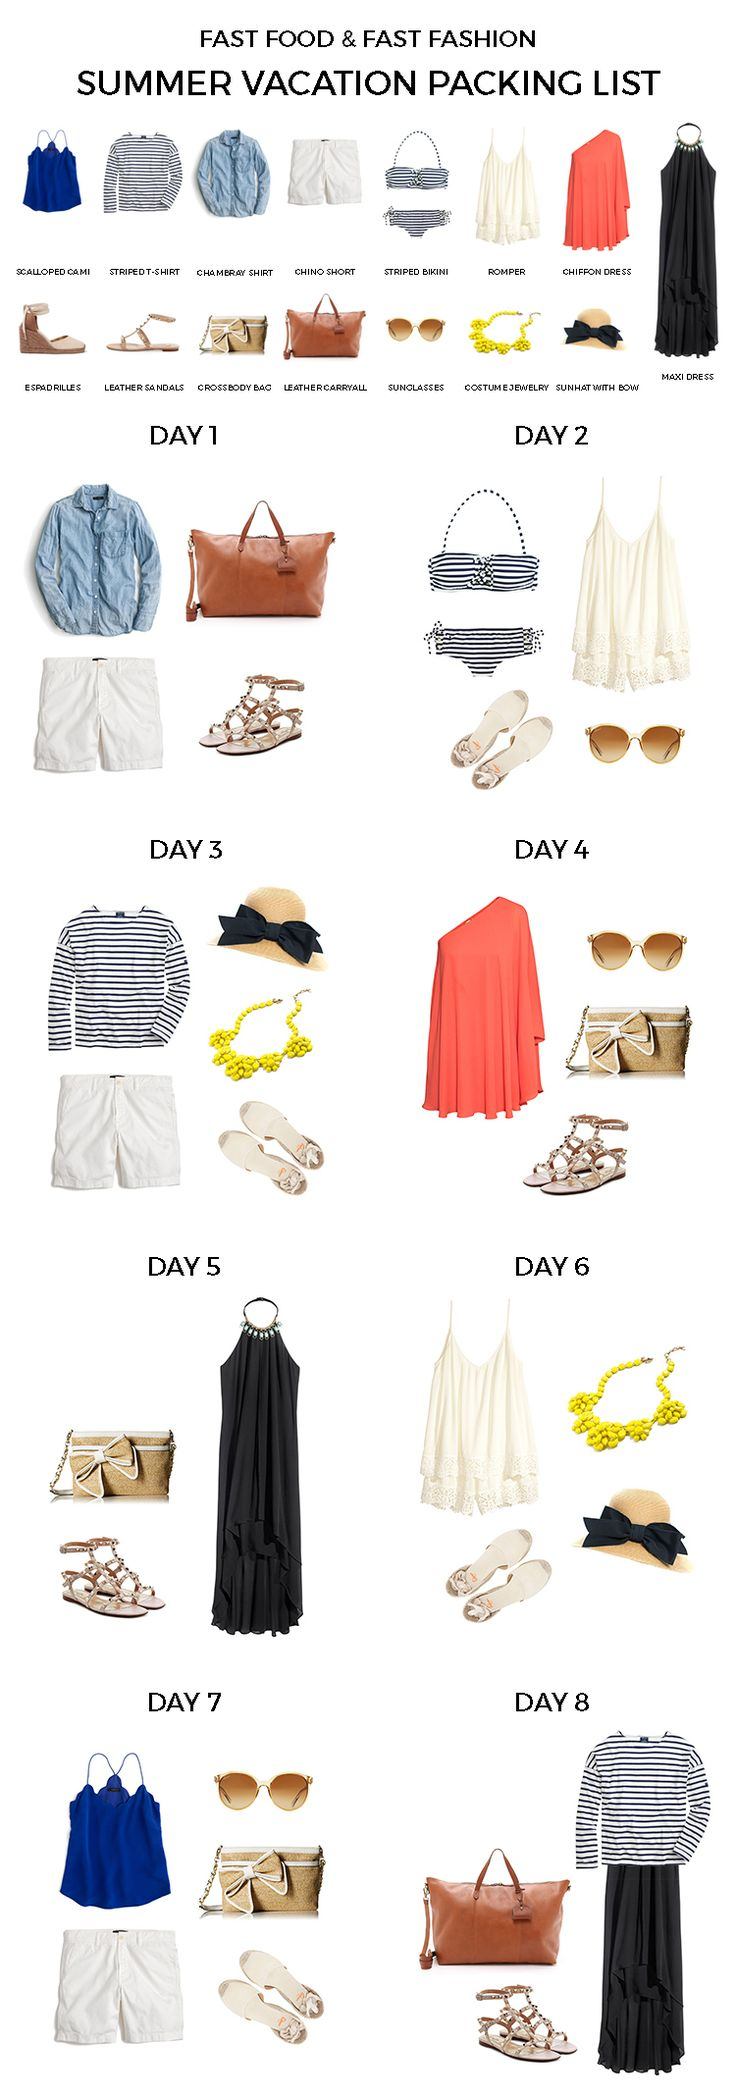 Summer Vacation Packing List                                                                                                                                                                                 More